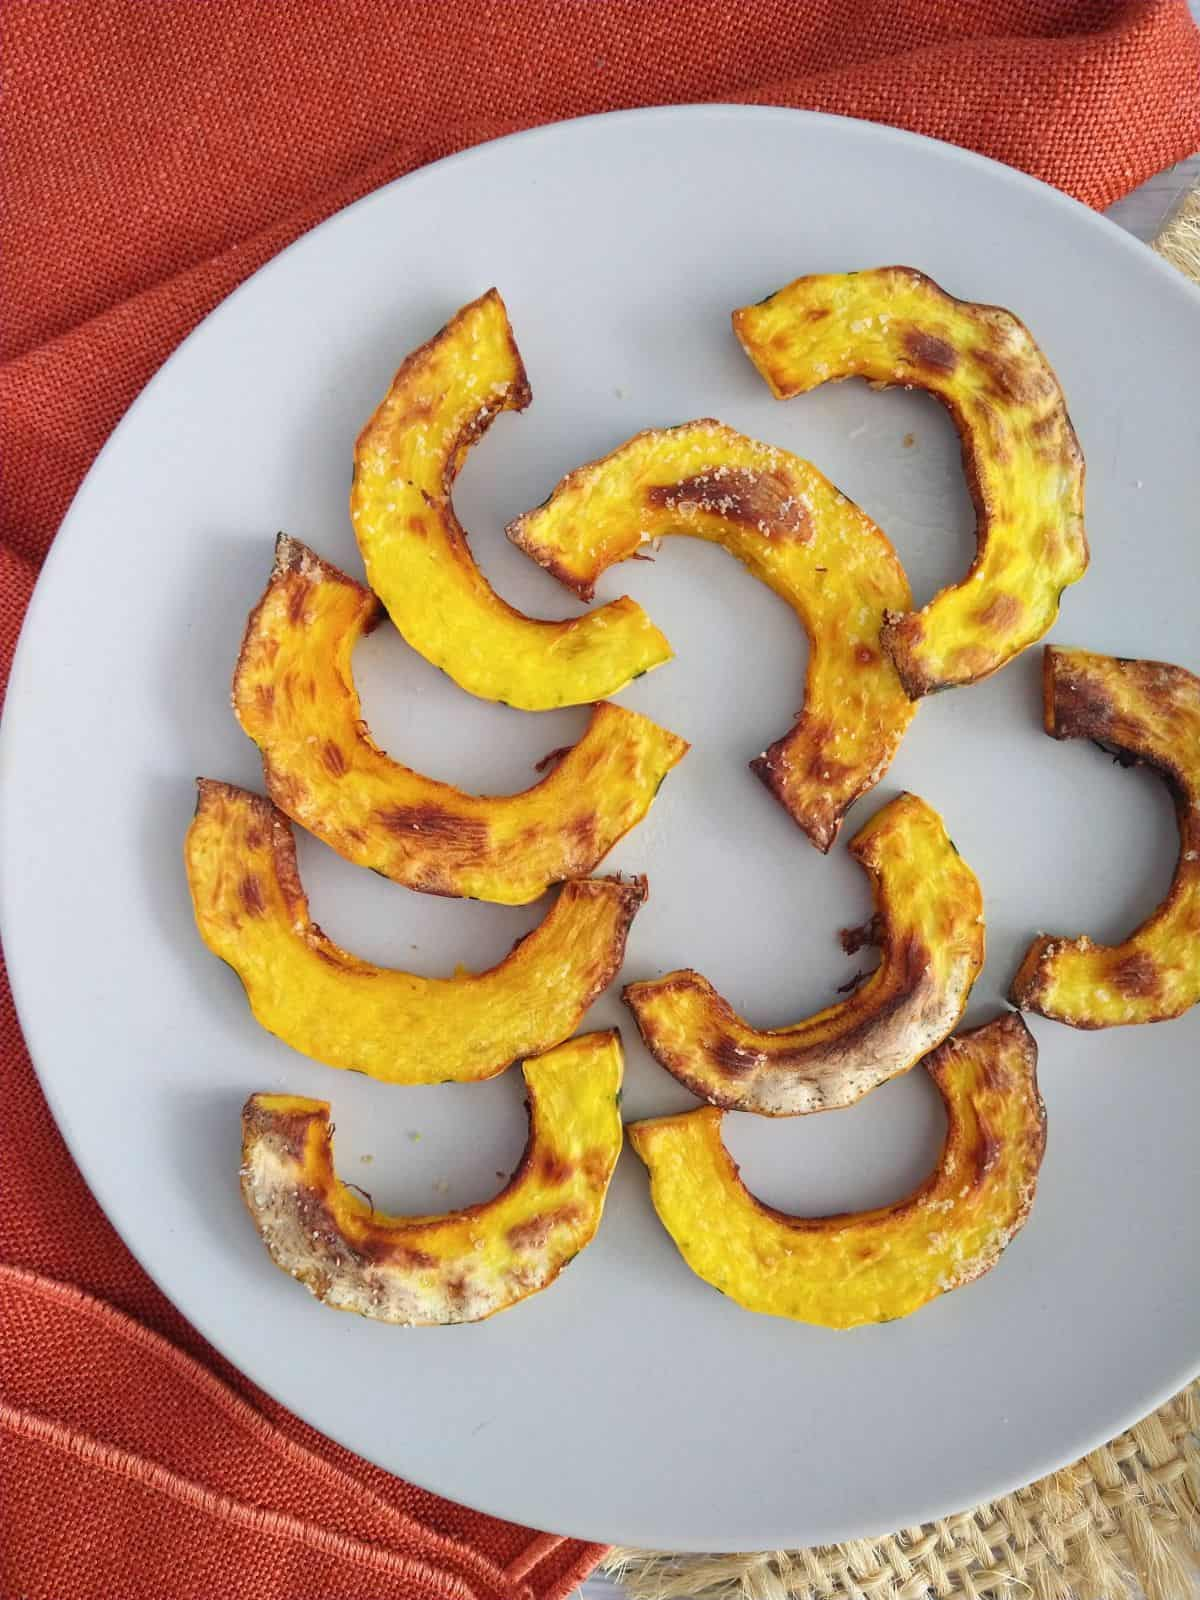 Air fryed Delicata squash cut into half moon shapes and cooked until starting to brown is sitting on a gray plate with a orange towel and piece of burlap underneath the plate.